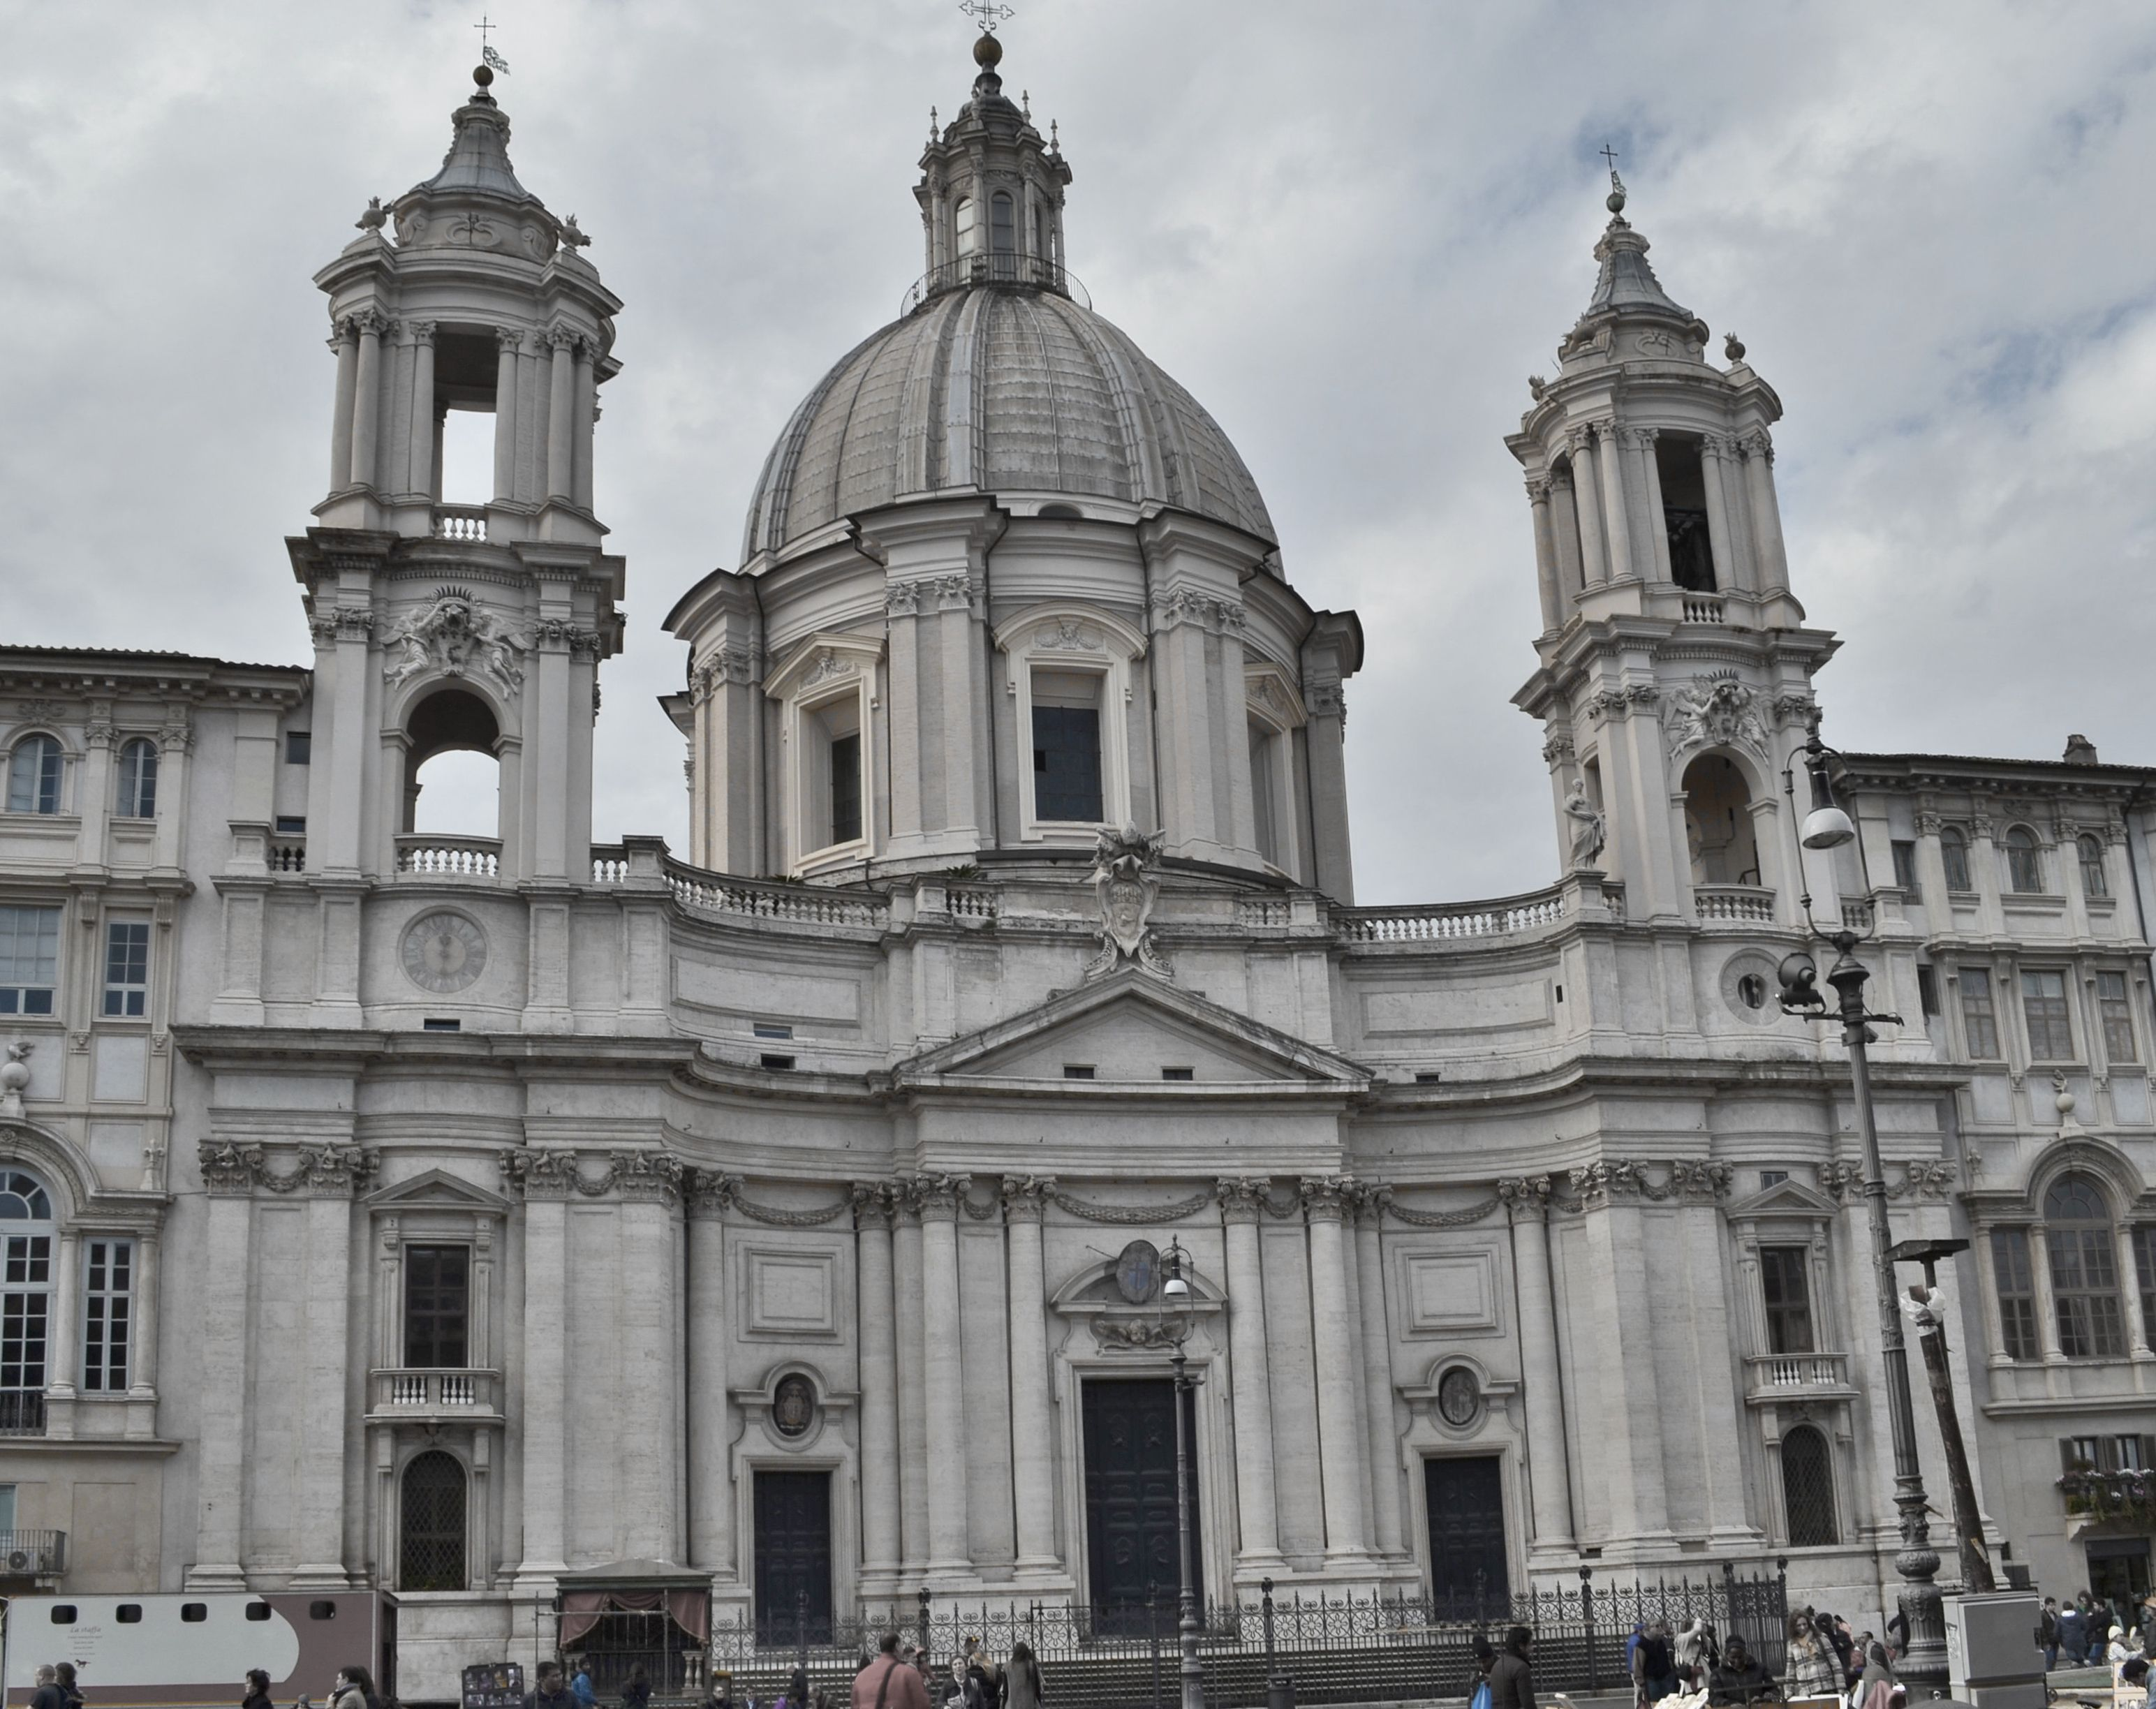 Italian baroque architecture borromini church of s for Italian baroque architecture